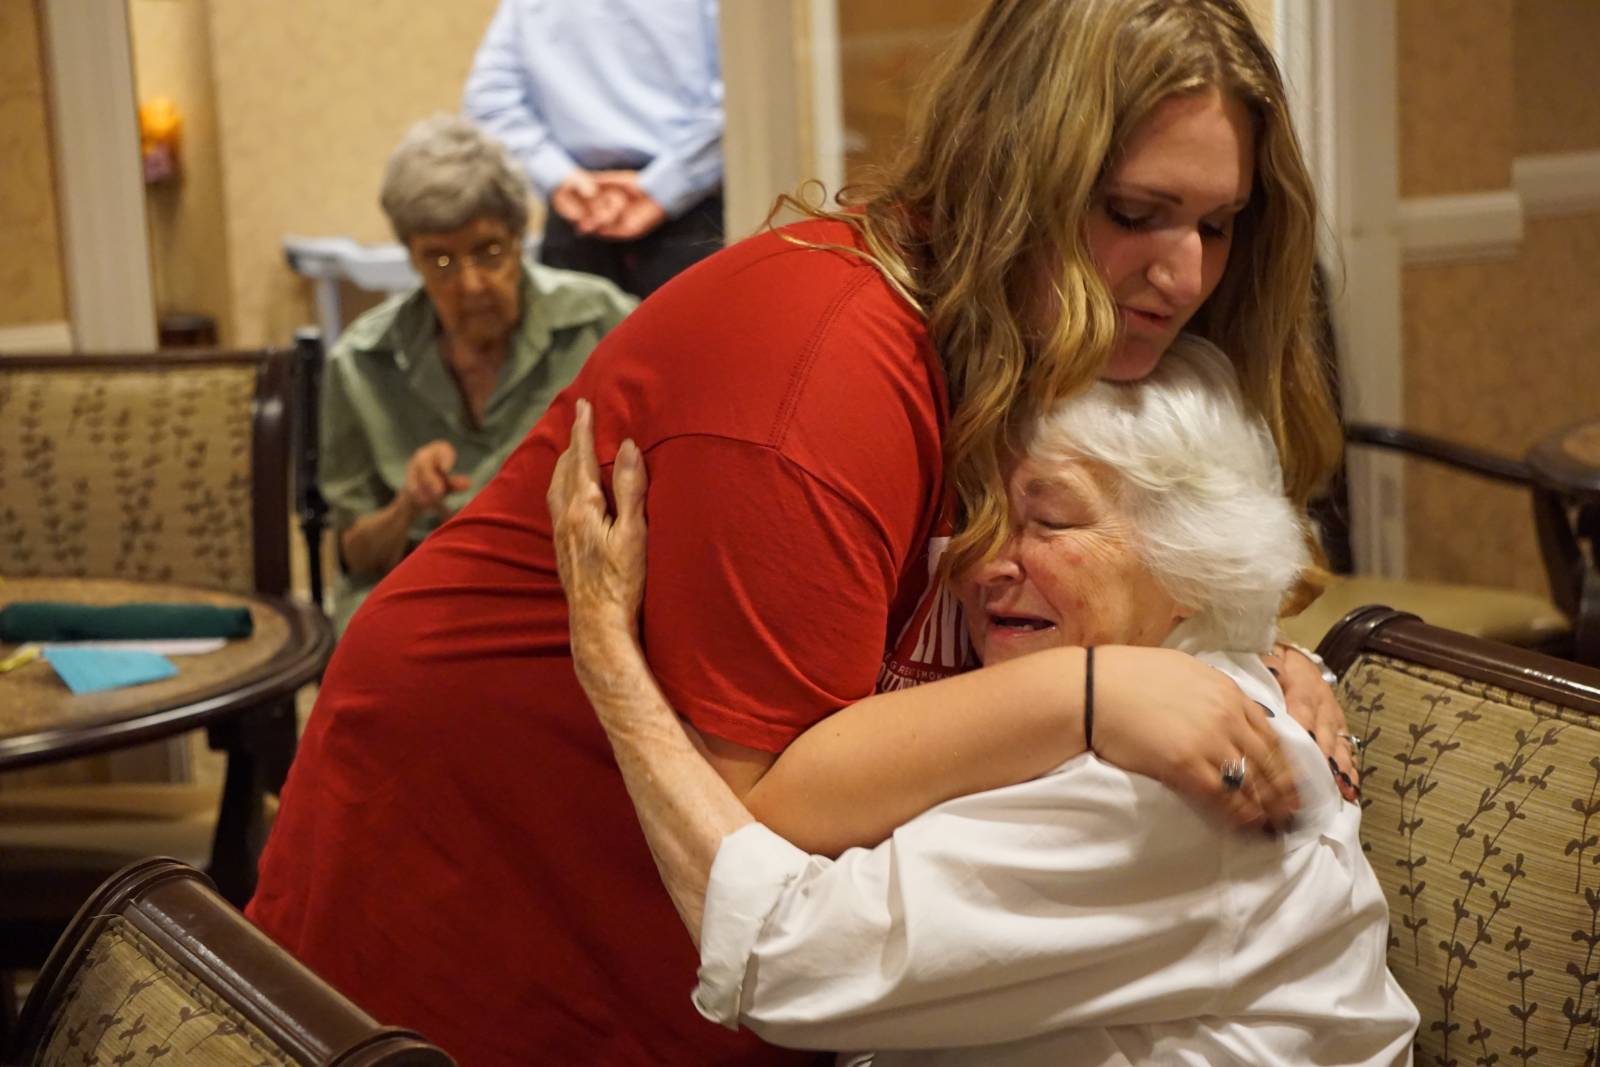 A member of the LABSYC gives an elderly woman a hug after singing at a Tennessee nursing home.